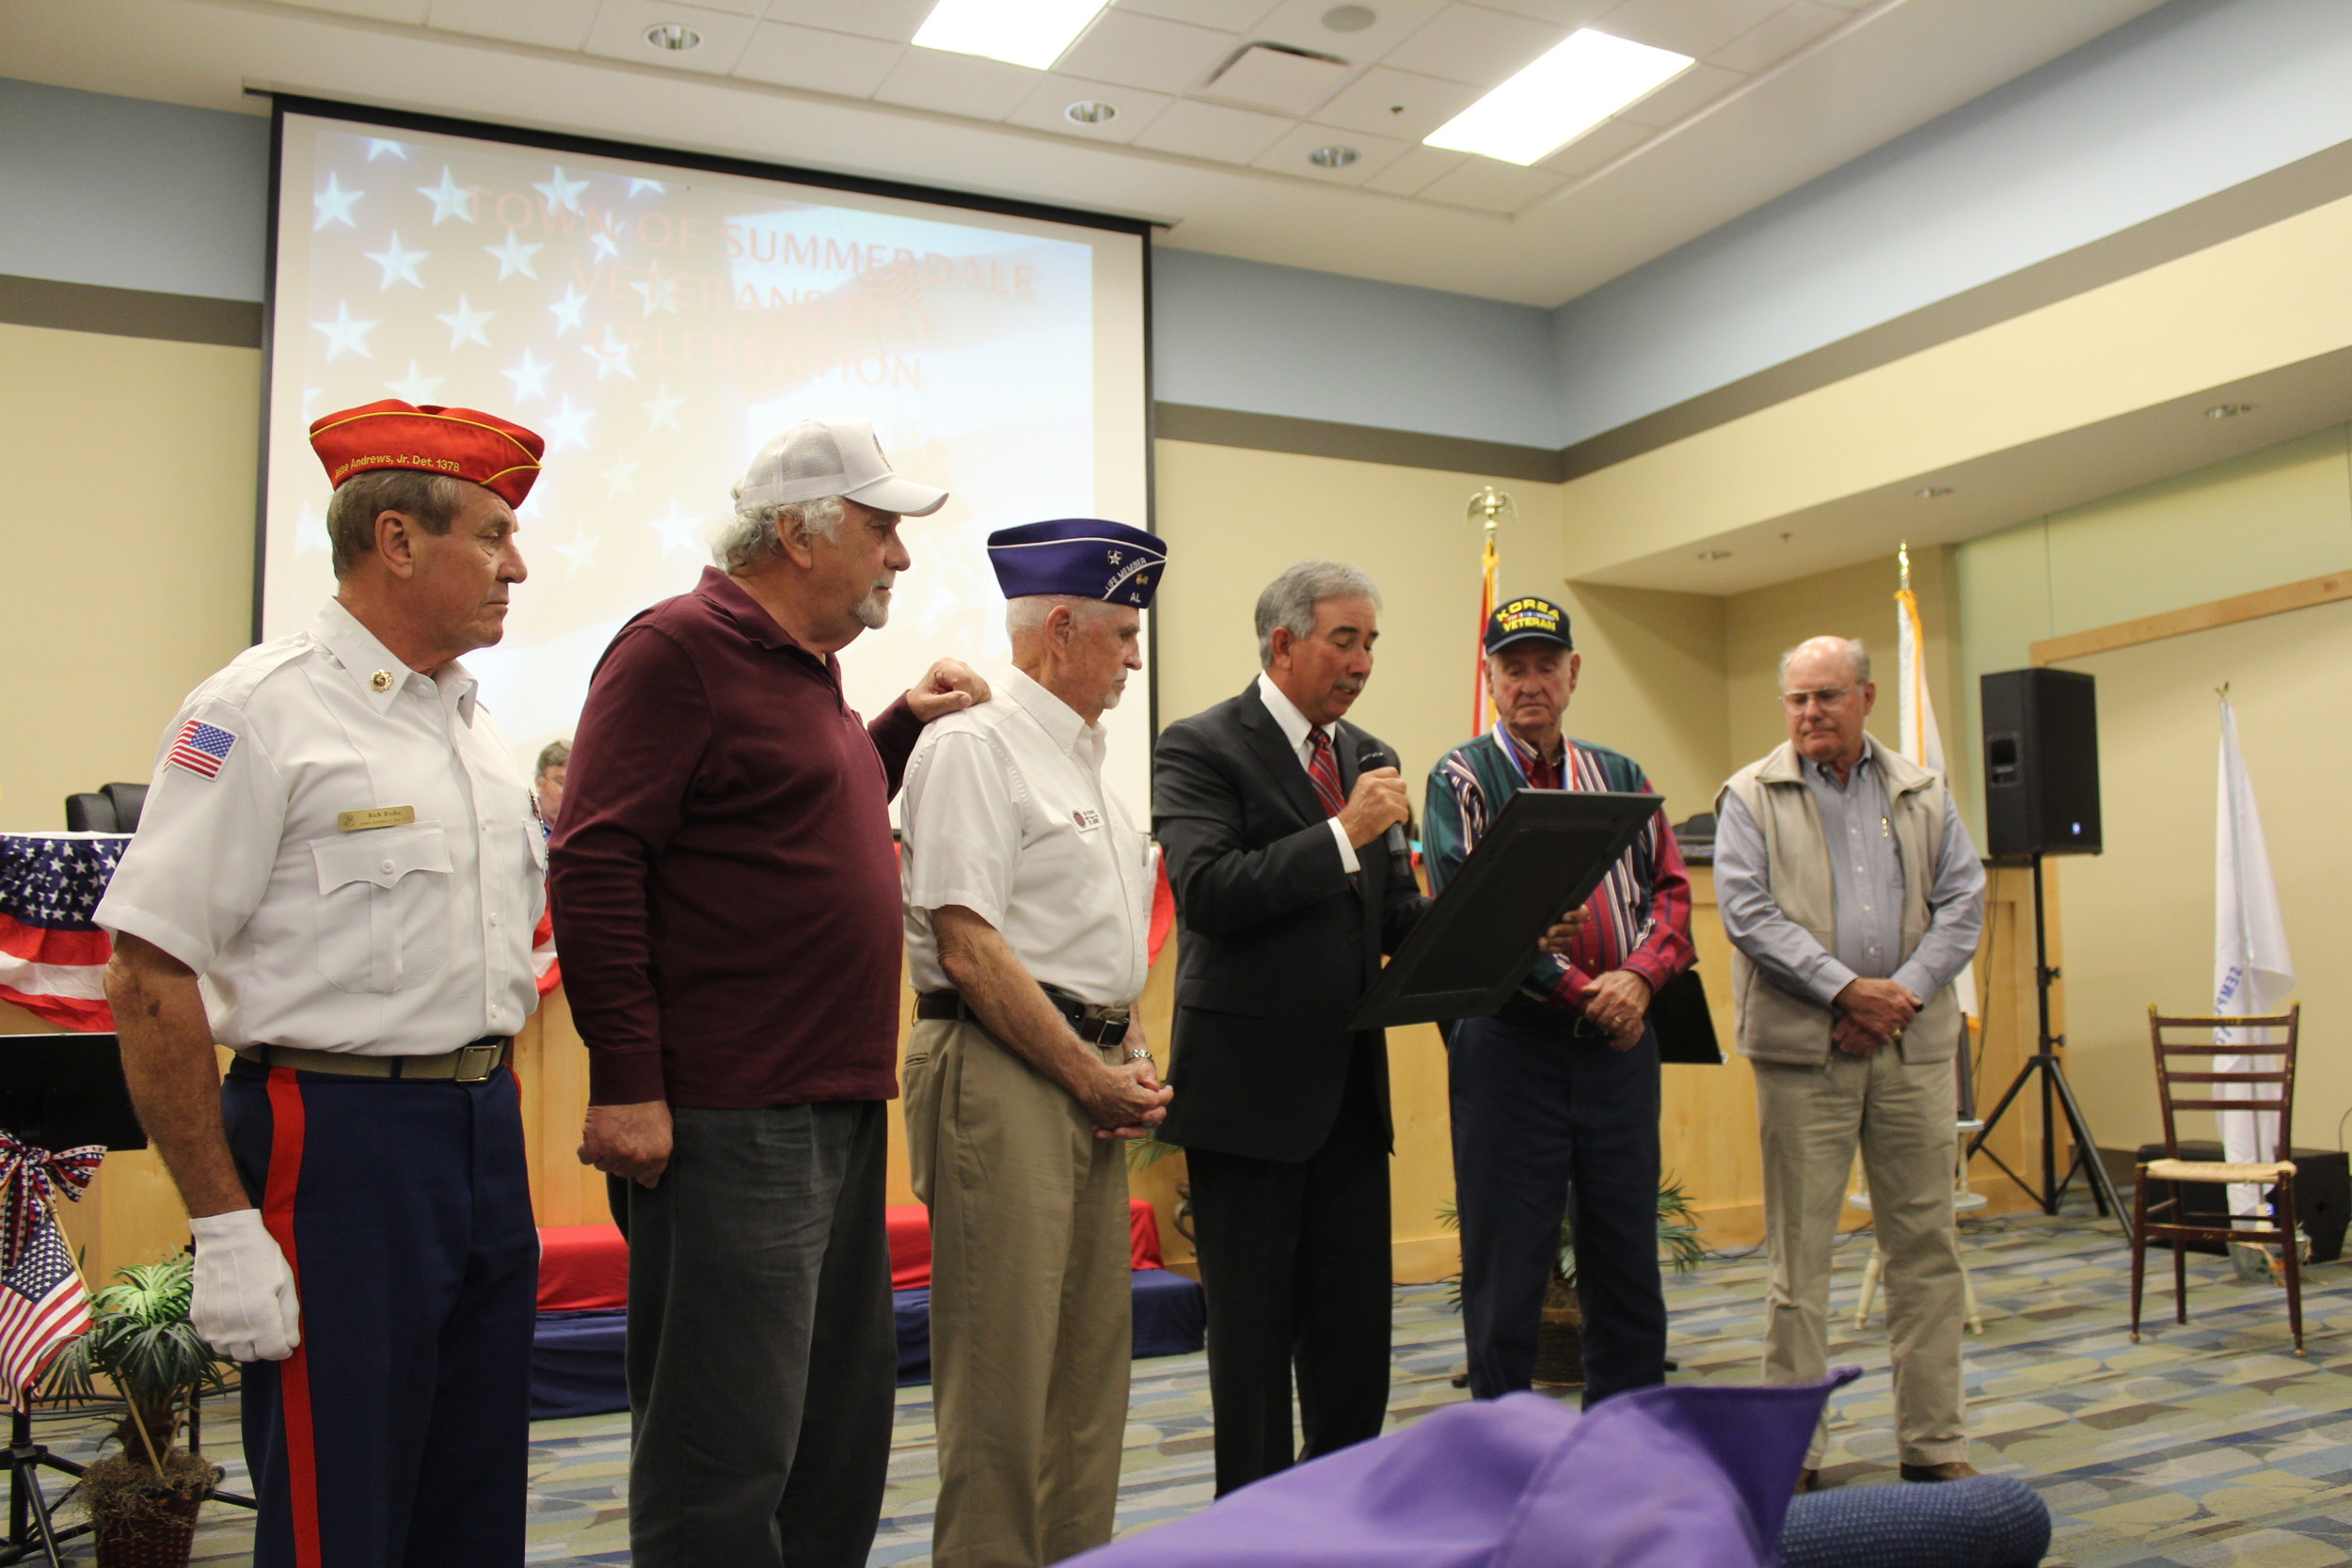 Summerdale hosted a program for veterans on Nov. 13, during which Mayor David Wilson proclaimed the town to be a Purple Heart Community.